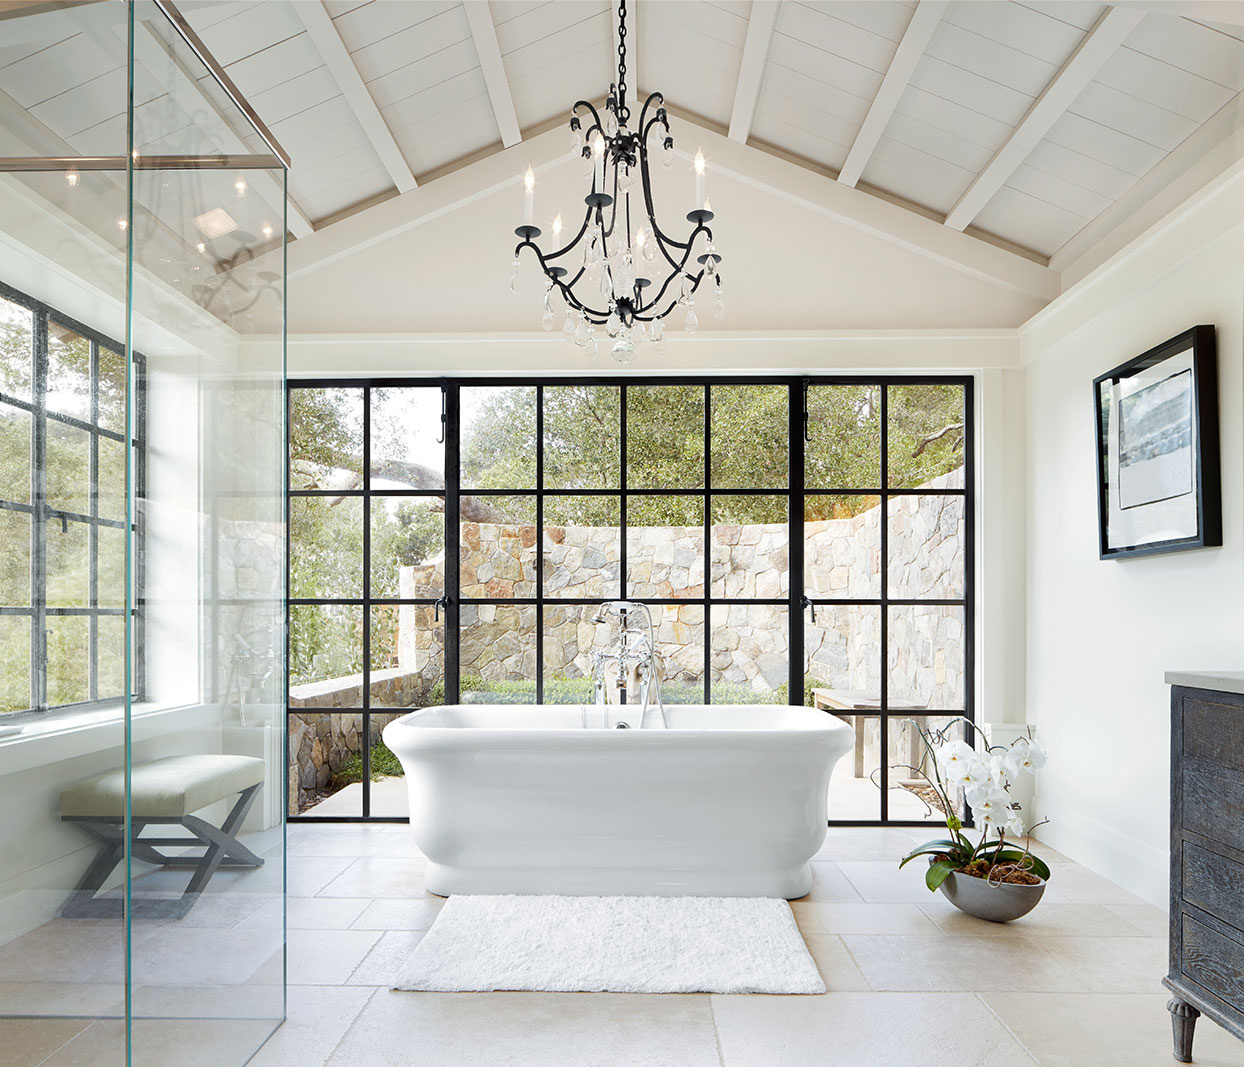 Architecture image of bathroom  | Trinette+Chris Photographers